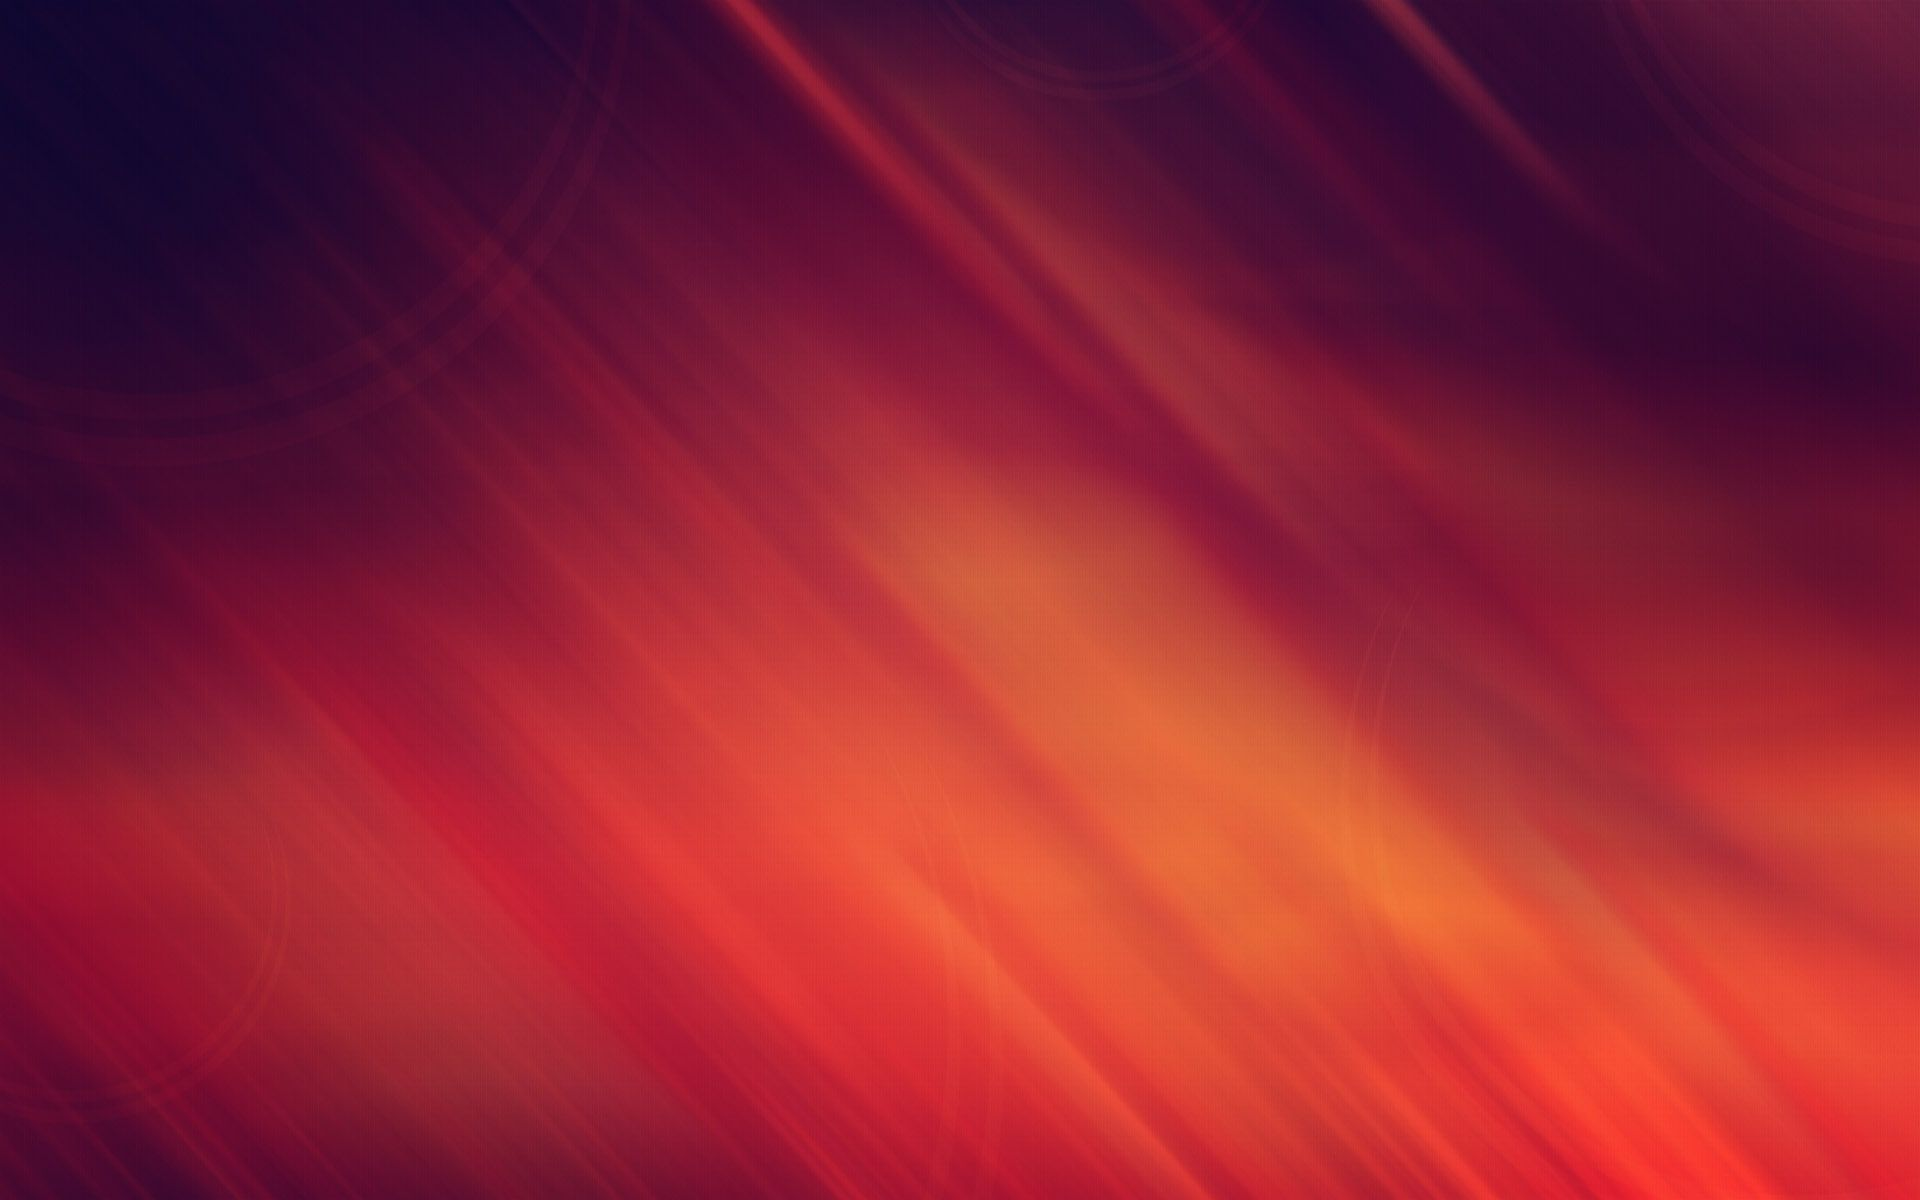 Red Wallpaper High Resolution